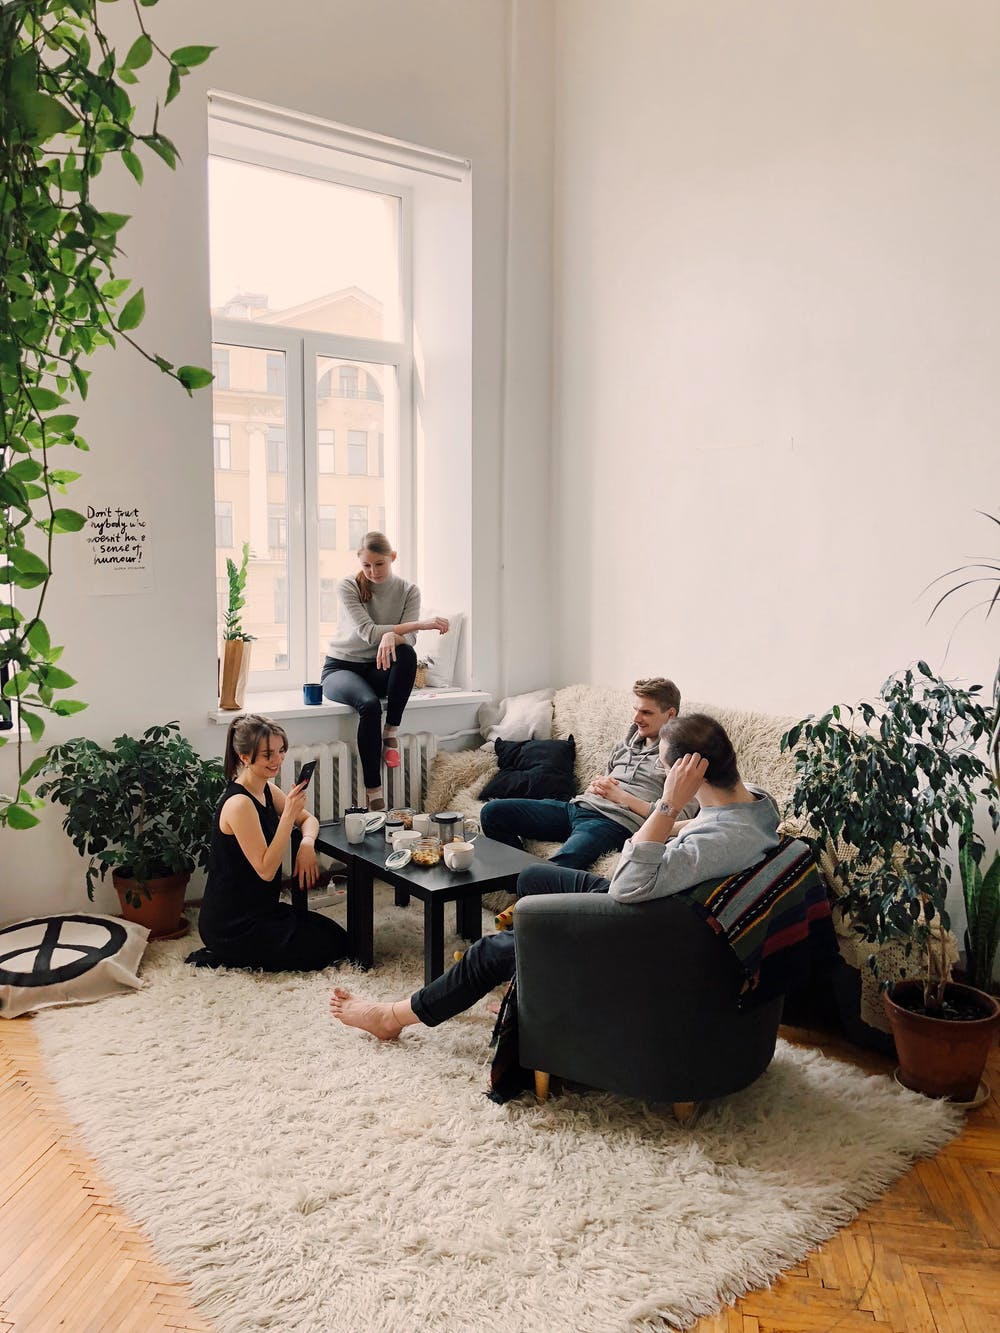 Student Roommates: How to Set Boundaries When Living with Roommates